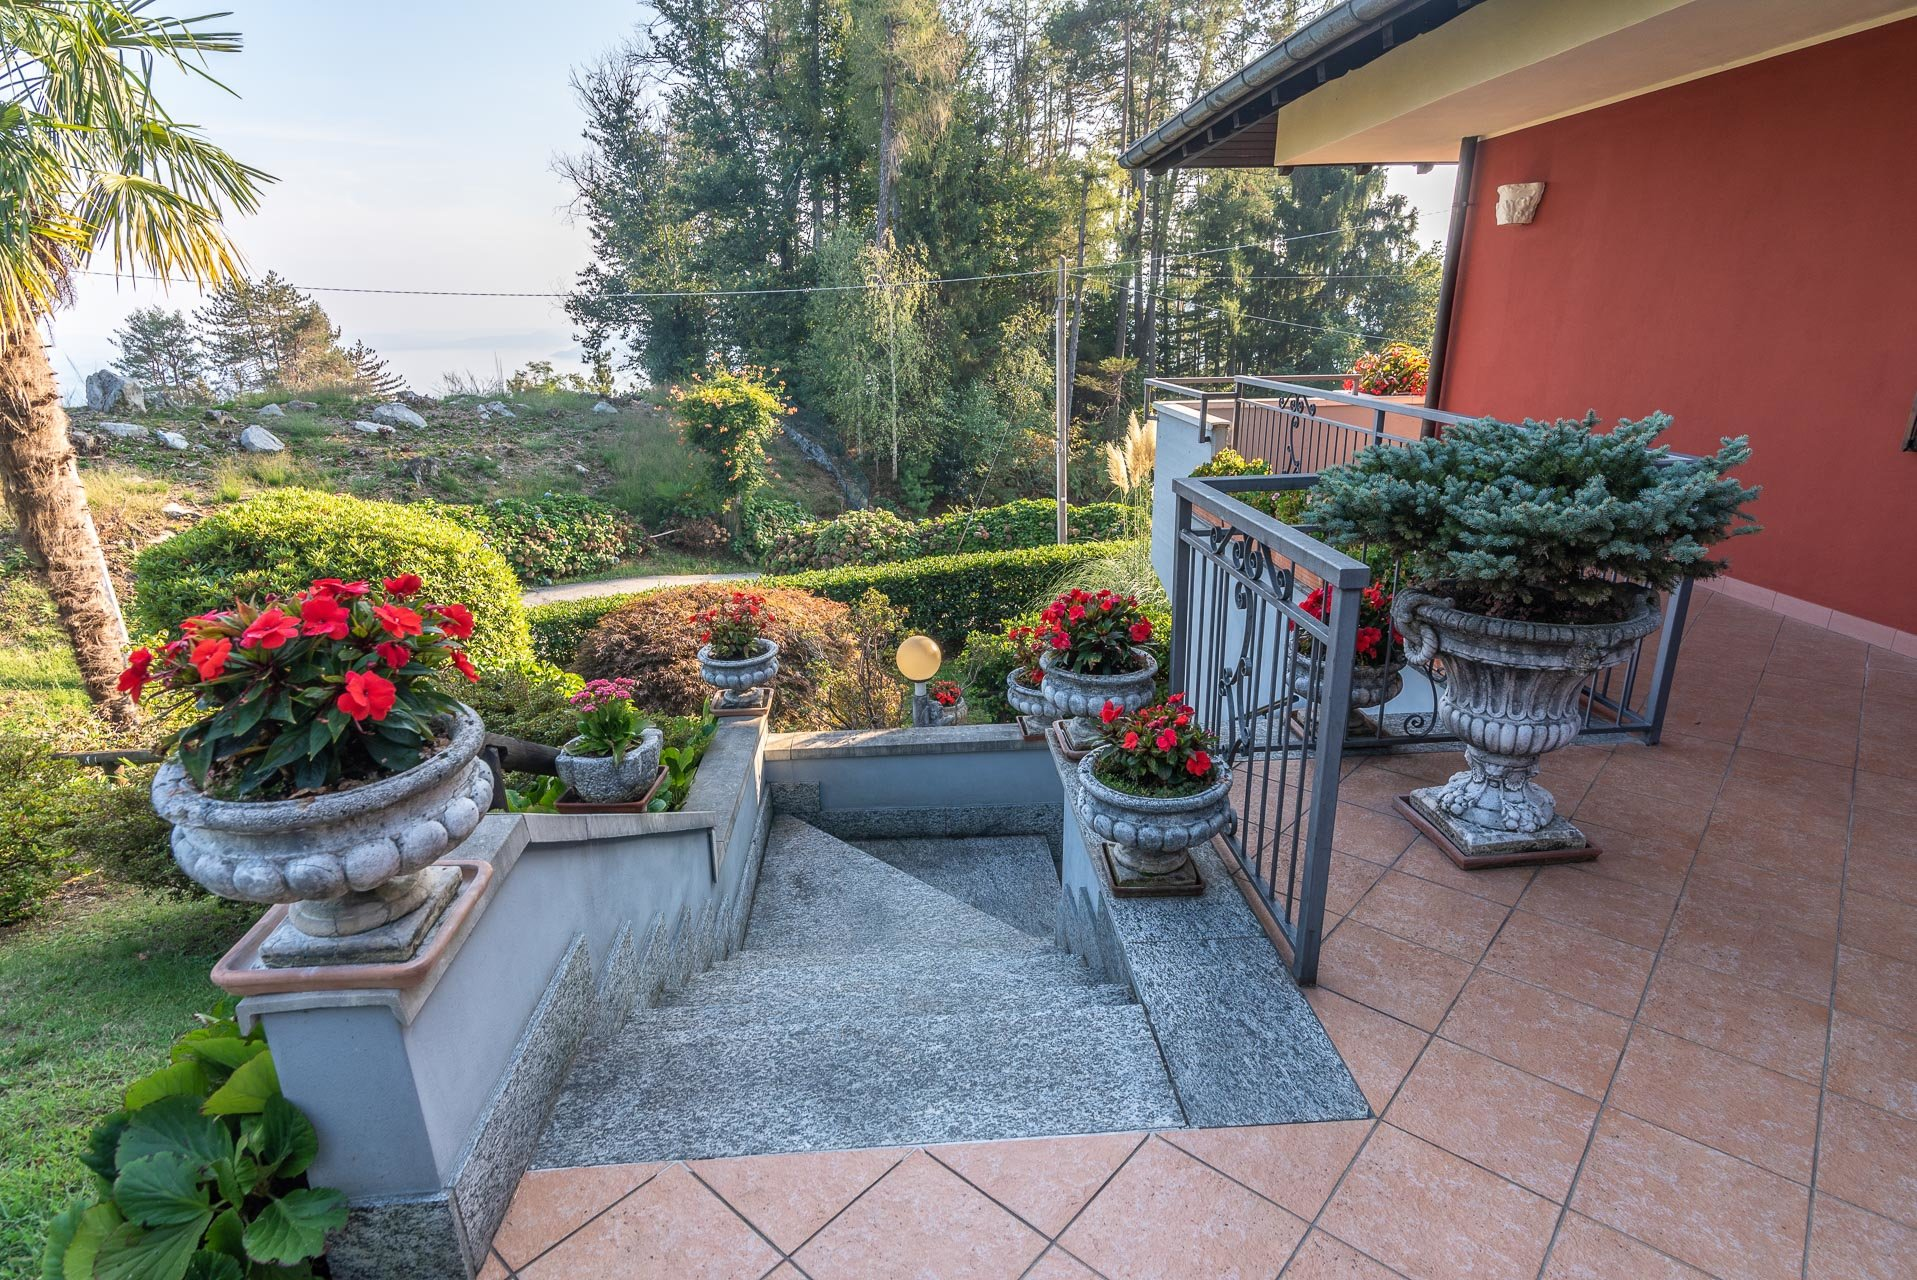 Villa for sale in Bee, with wonderful lake view - entrance